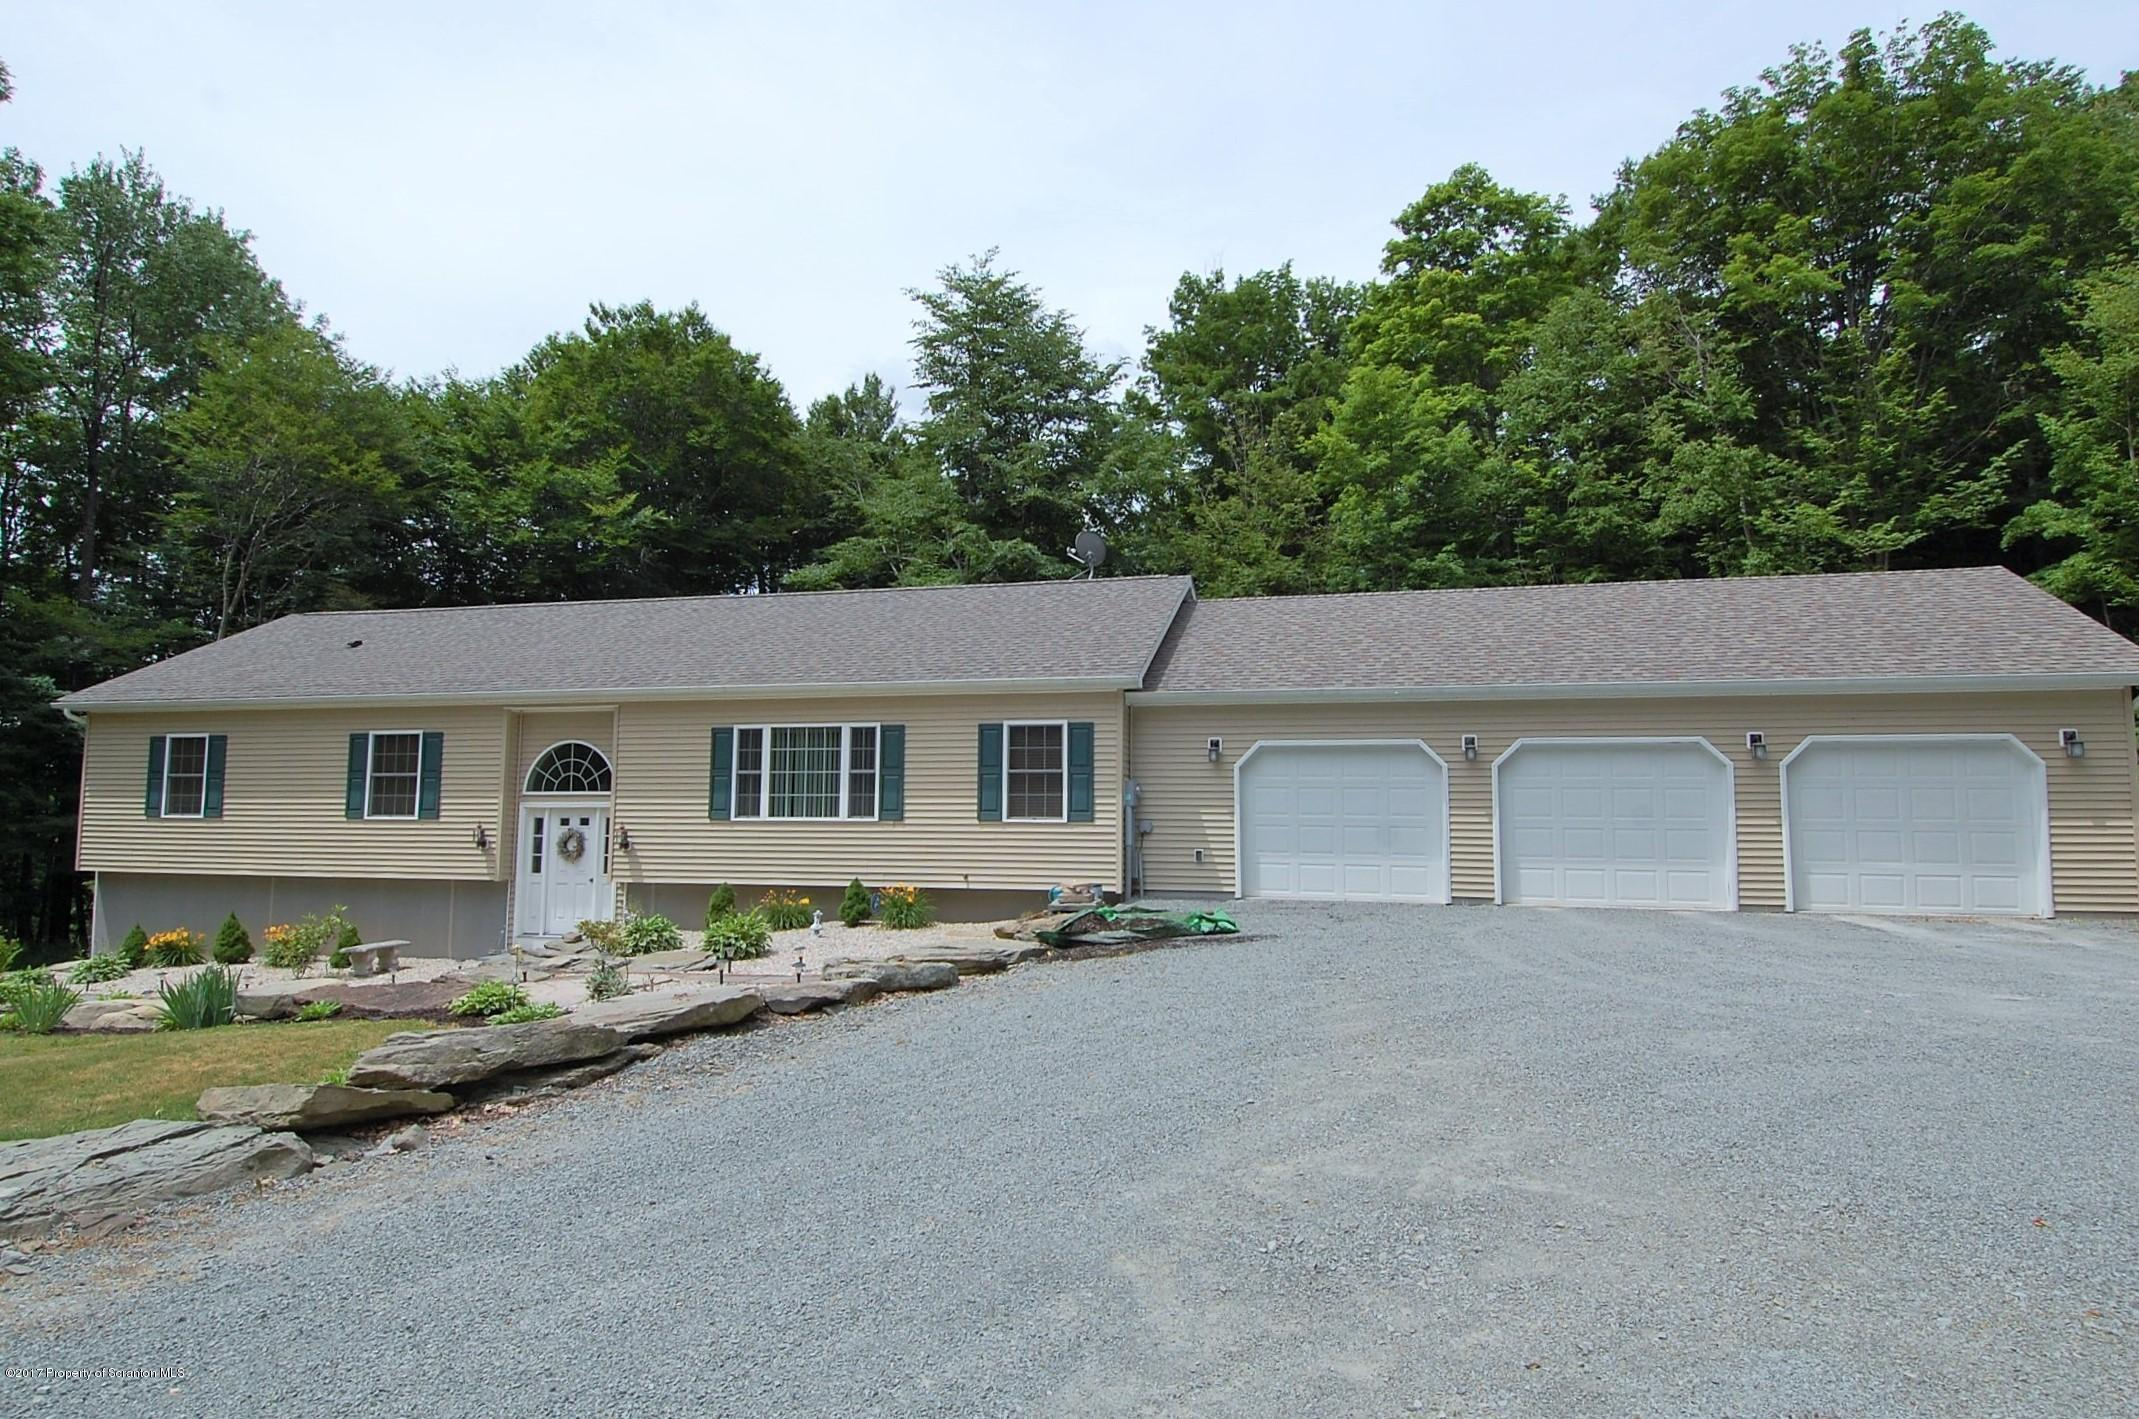 Mls 17 2857 1269 belcher road union dale pa 18470 for 7 kitchen road gouldsboro pa